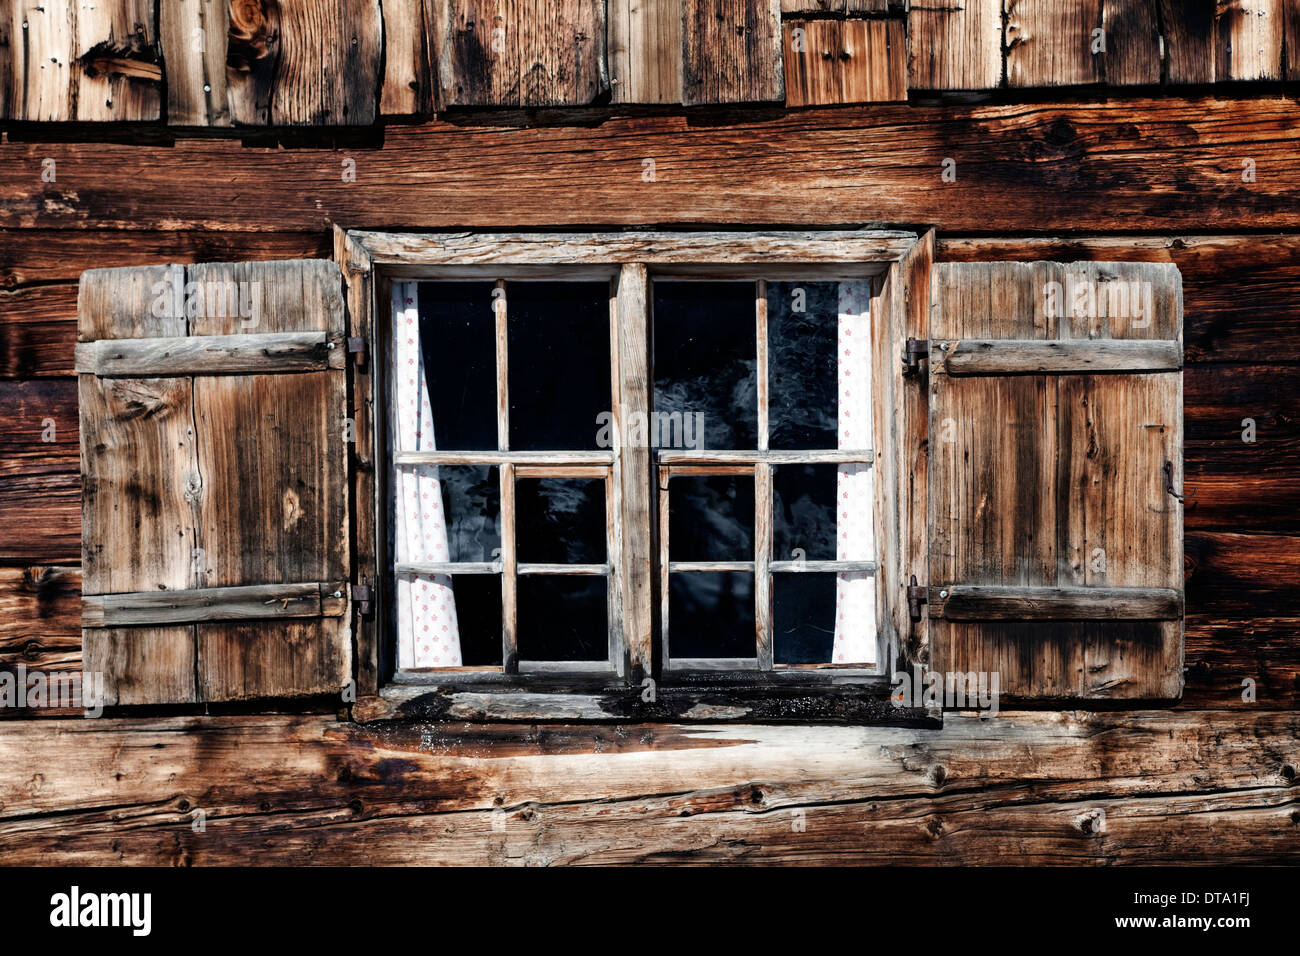 Rustic Old Wooden Shutters Stockfotos & Rustic Old Wooden